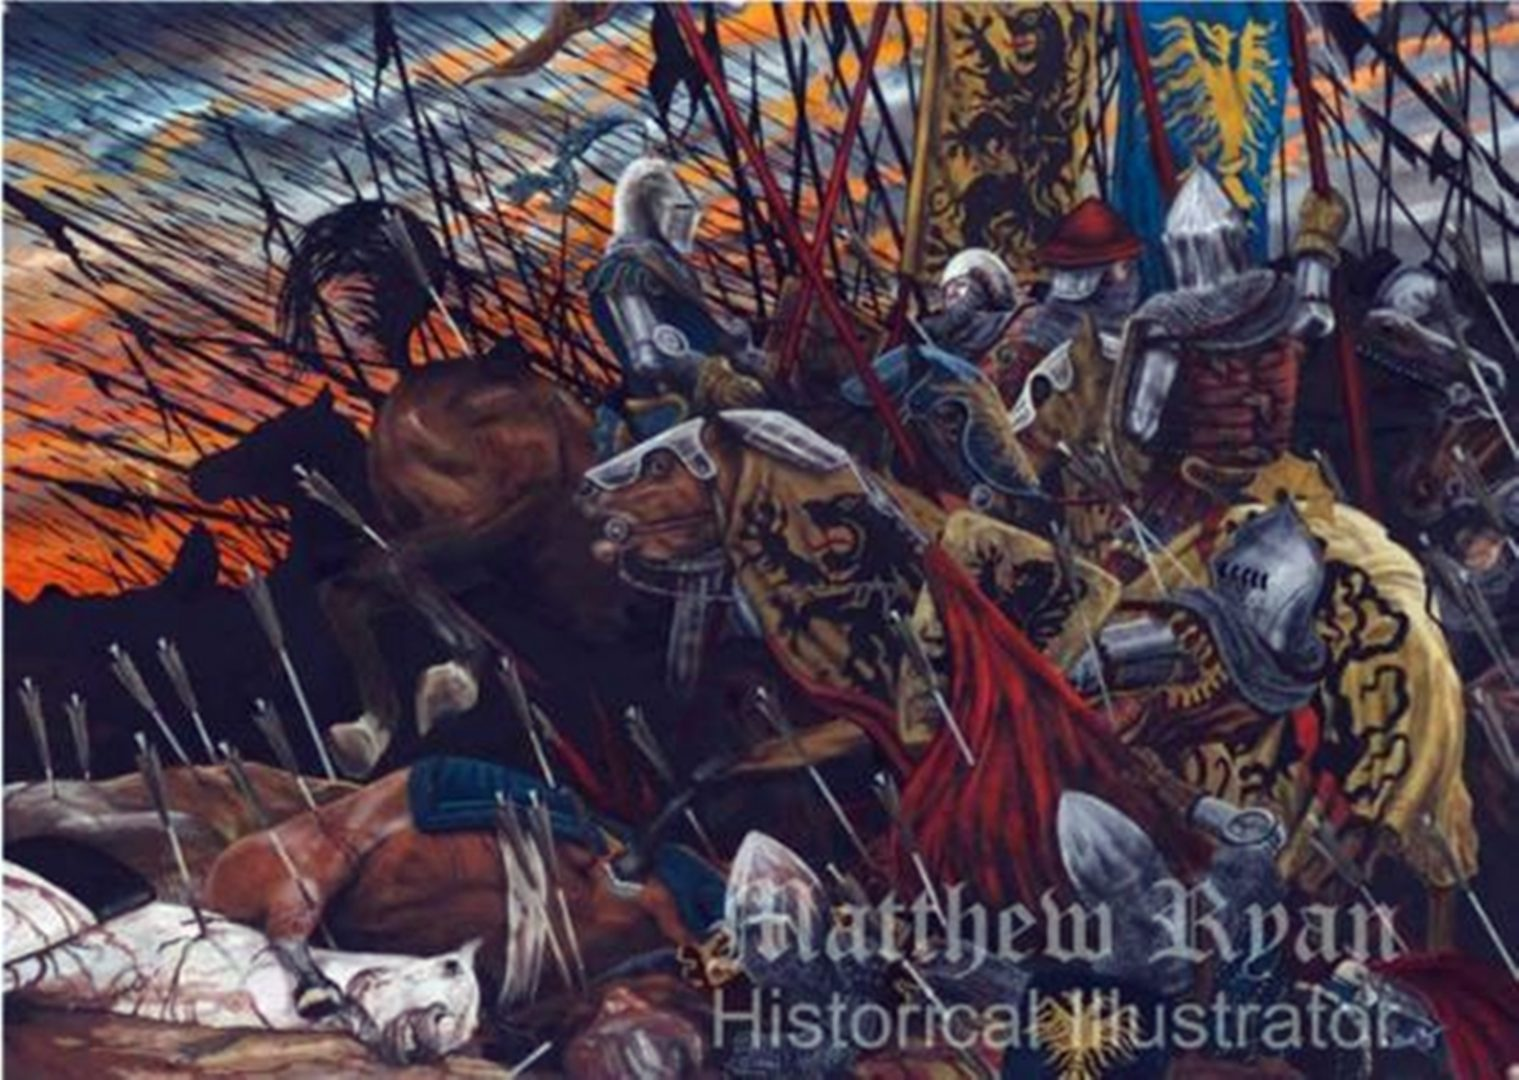 Battle of Crecy 1346 | Matthew Ryan